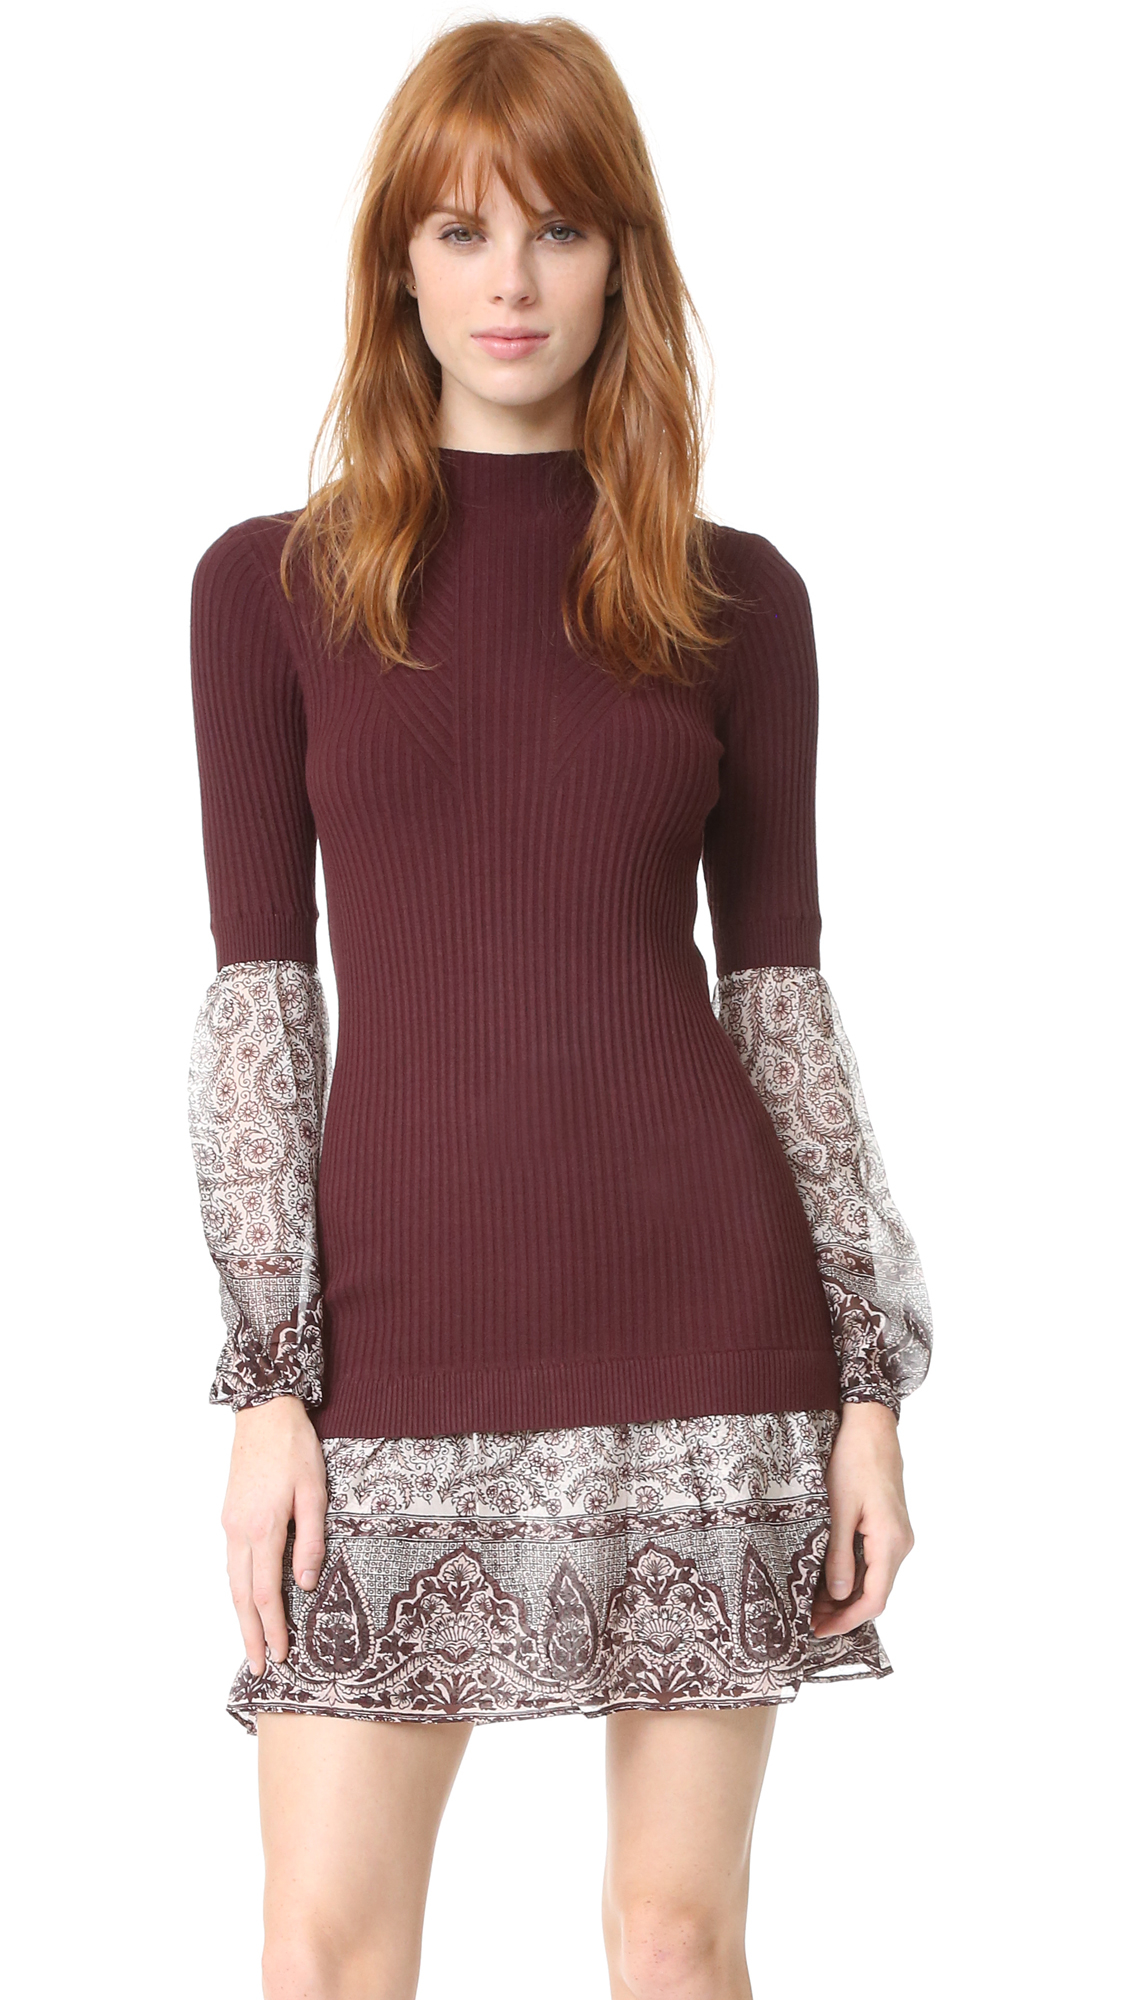 Lyst veronica beard sweater shirt combo dress for Sweater and dress shirt combo